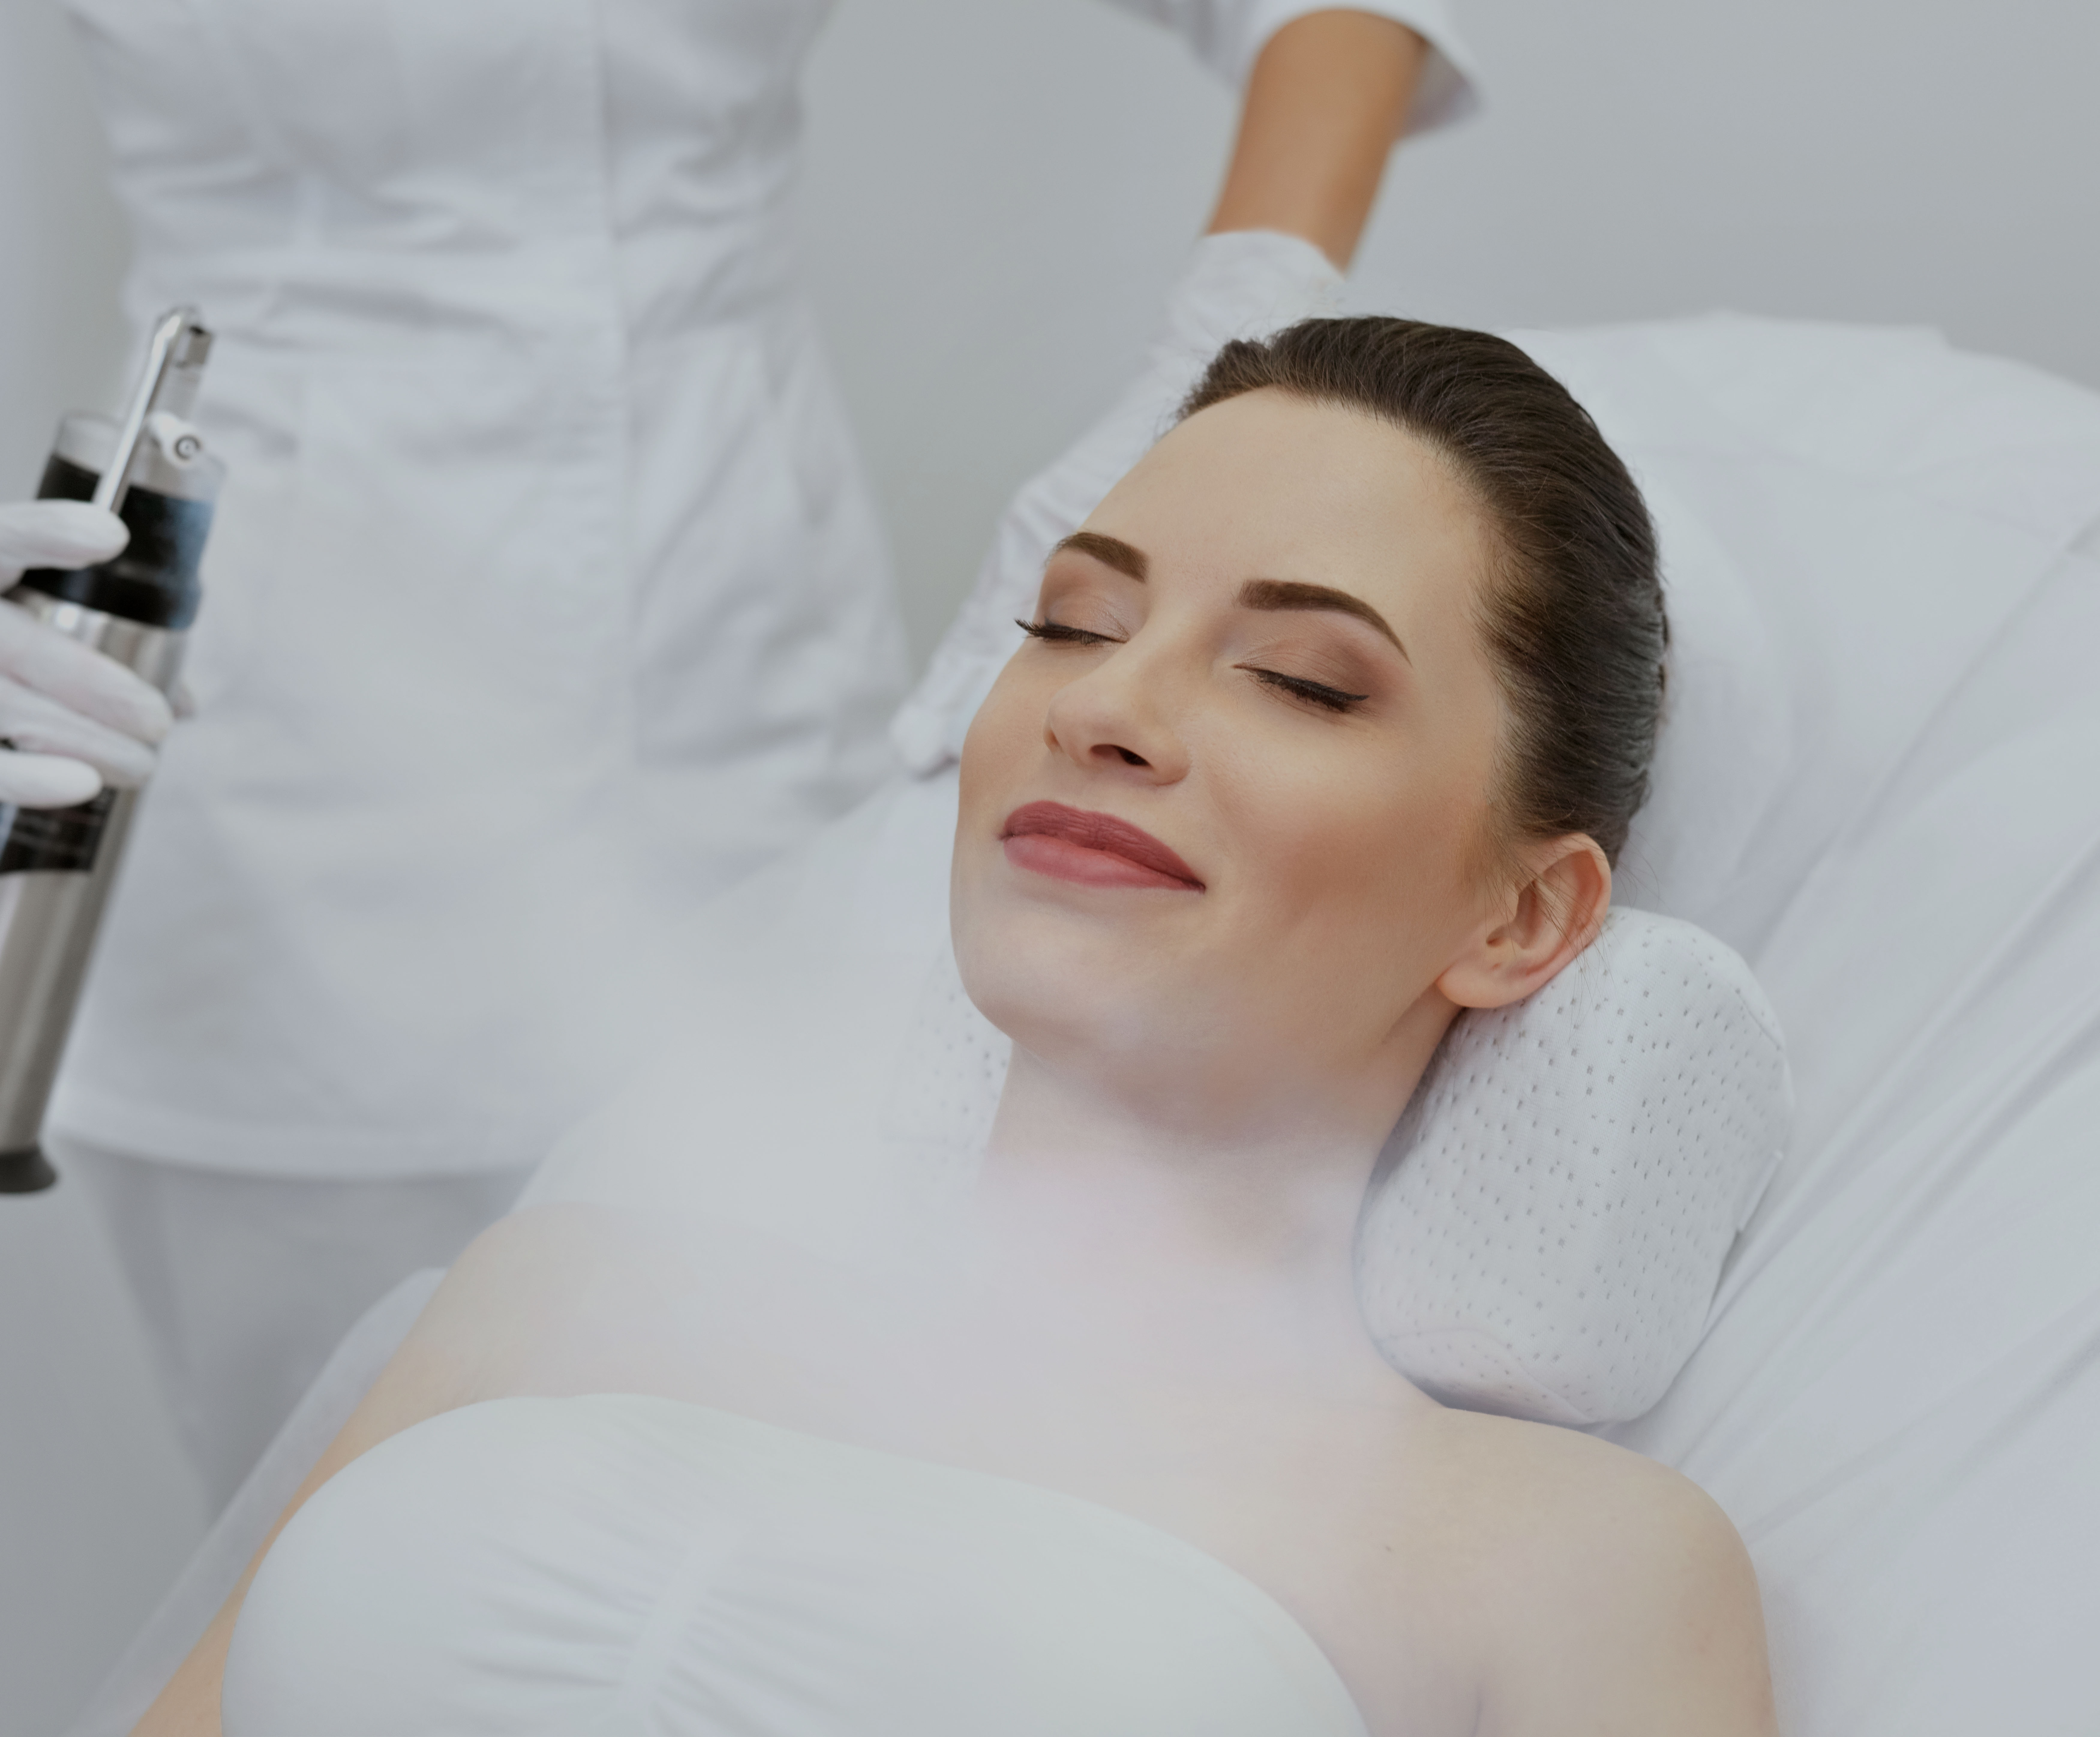 Evolve Cryo facial